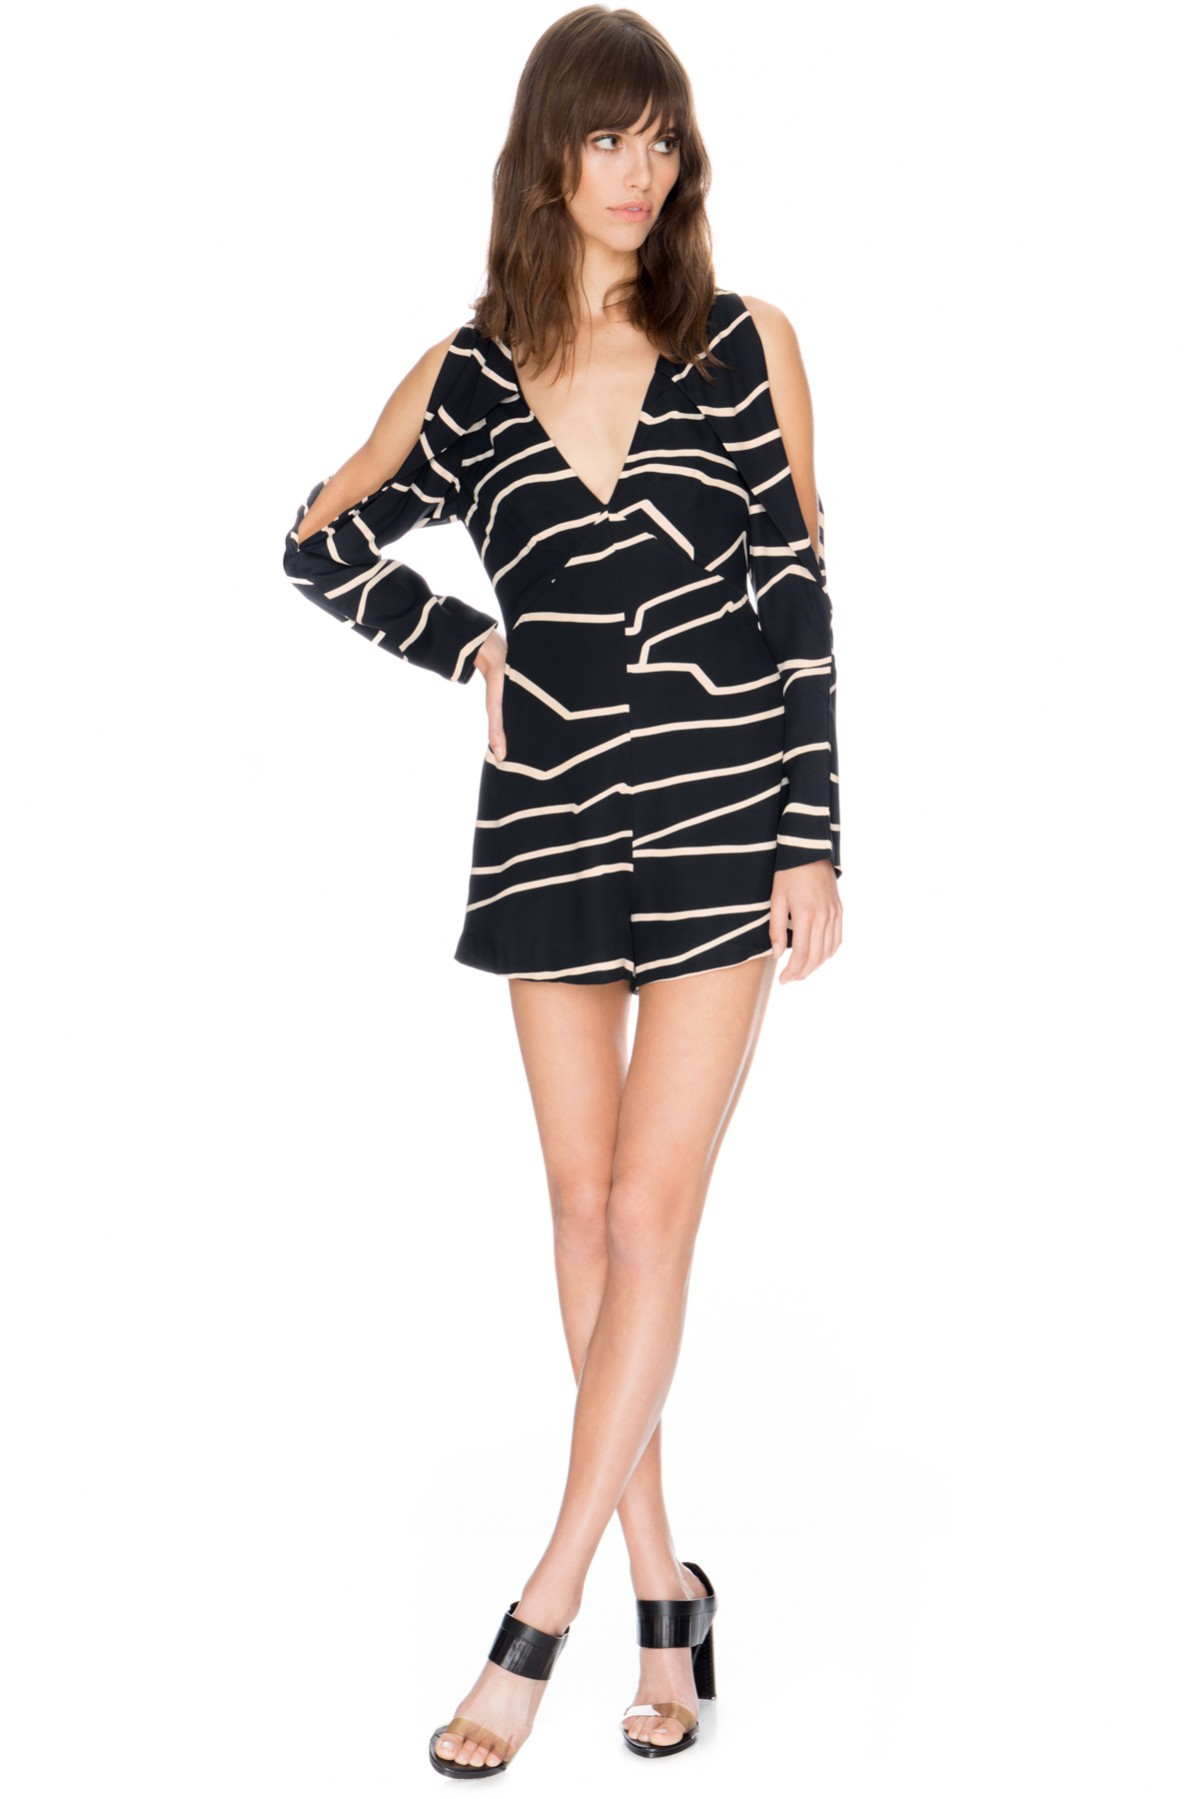 C/MEO Do It Now Outline Playsuit.